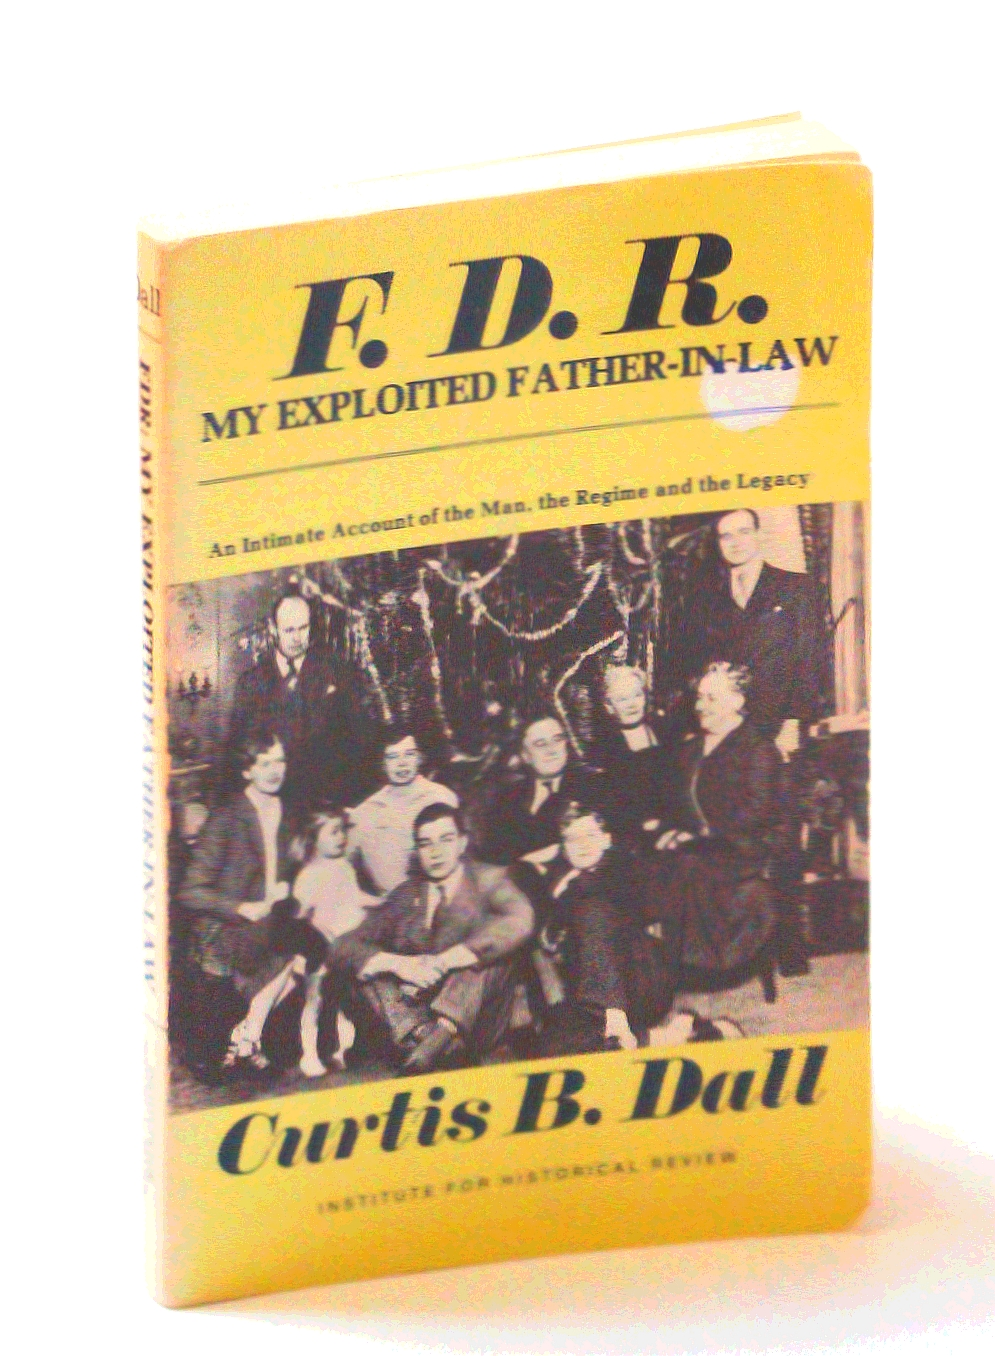 Image for F. D. R. My Exploited Father-In-Law: An Intimate Account of the Man, the Regime and the Legacy